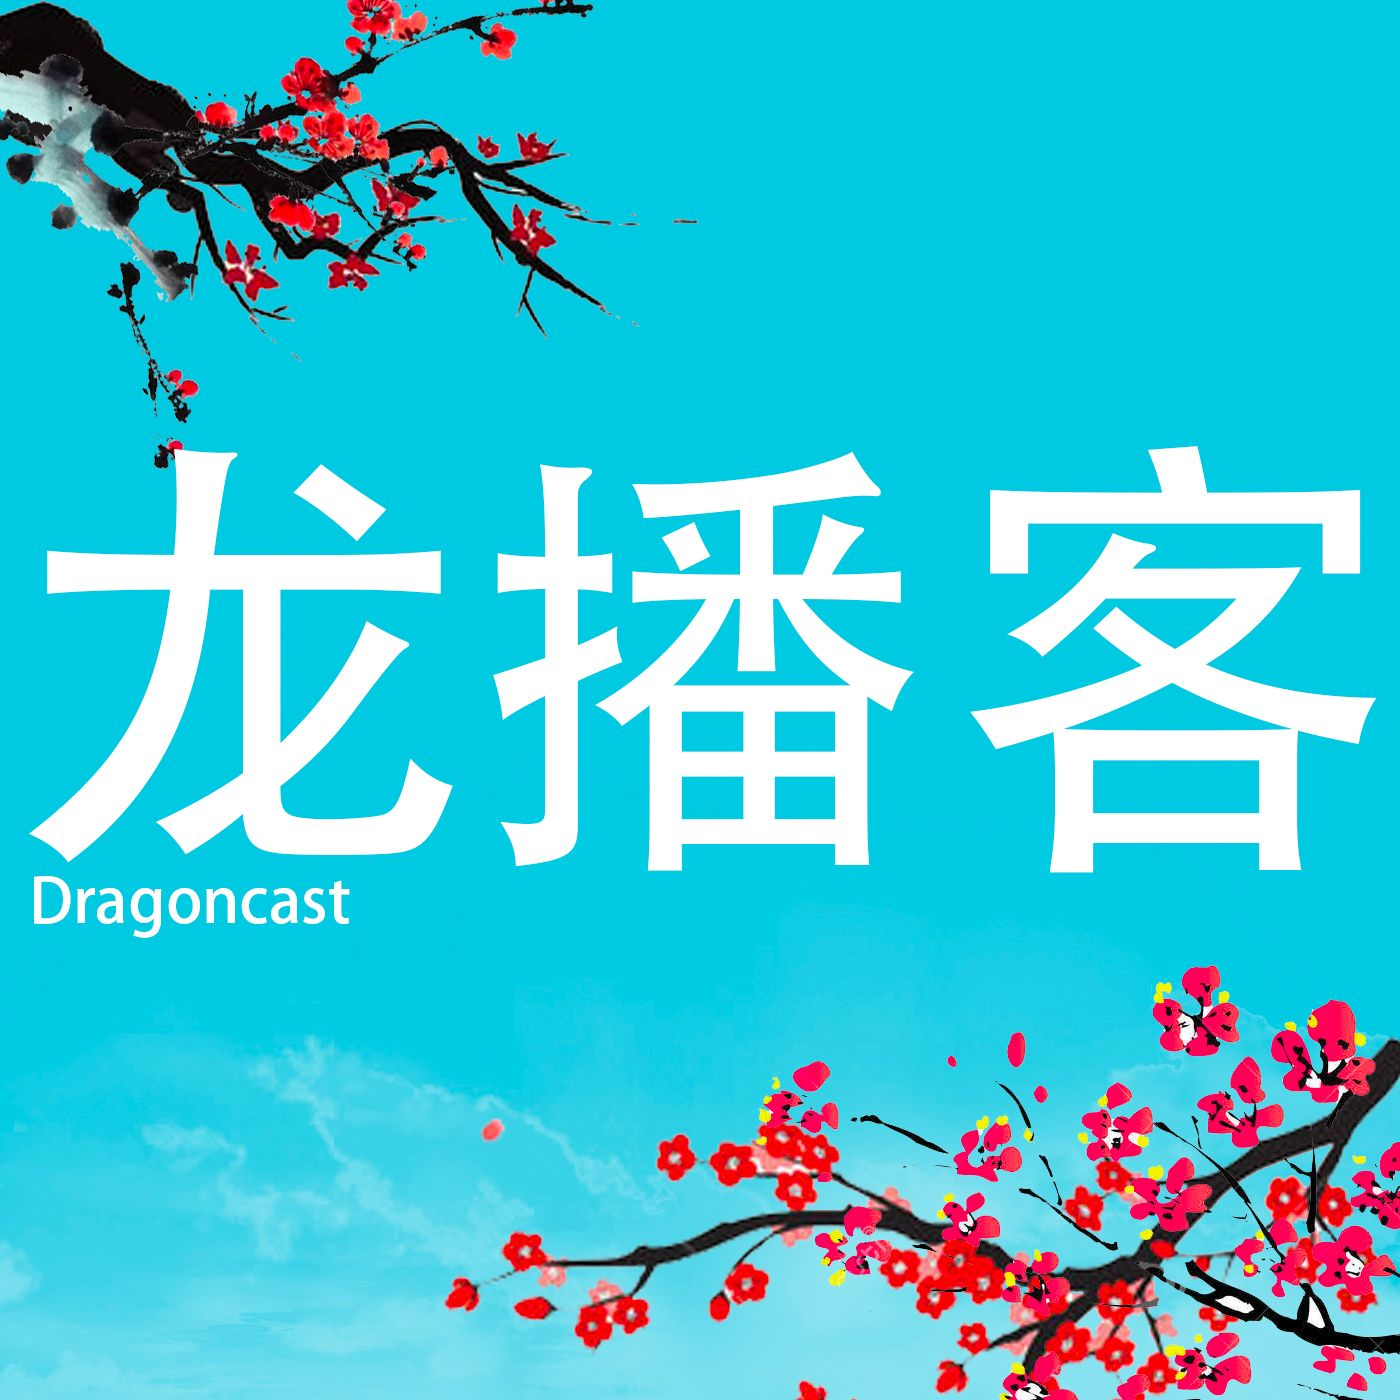 Dragoncast 龙播客 (Learn Chinese)